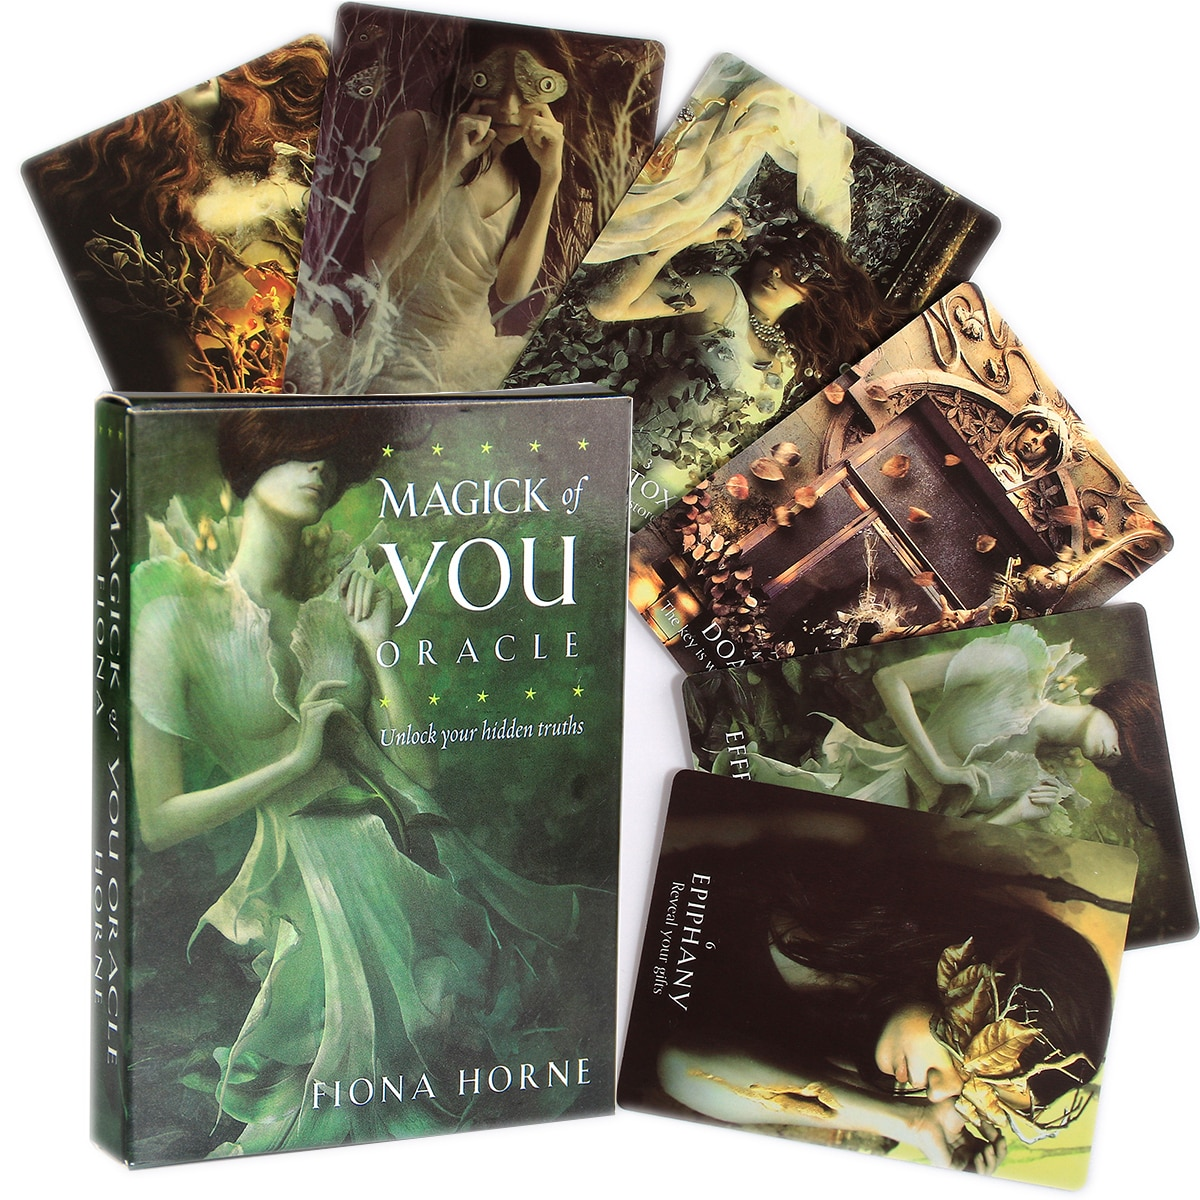 Magick Of You Oracle Unlock Your Hidden Truths Oracle Deck Card Game Friend Party Board Game Divination Fate Tarot Cards